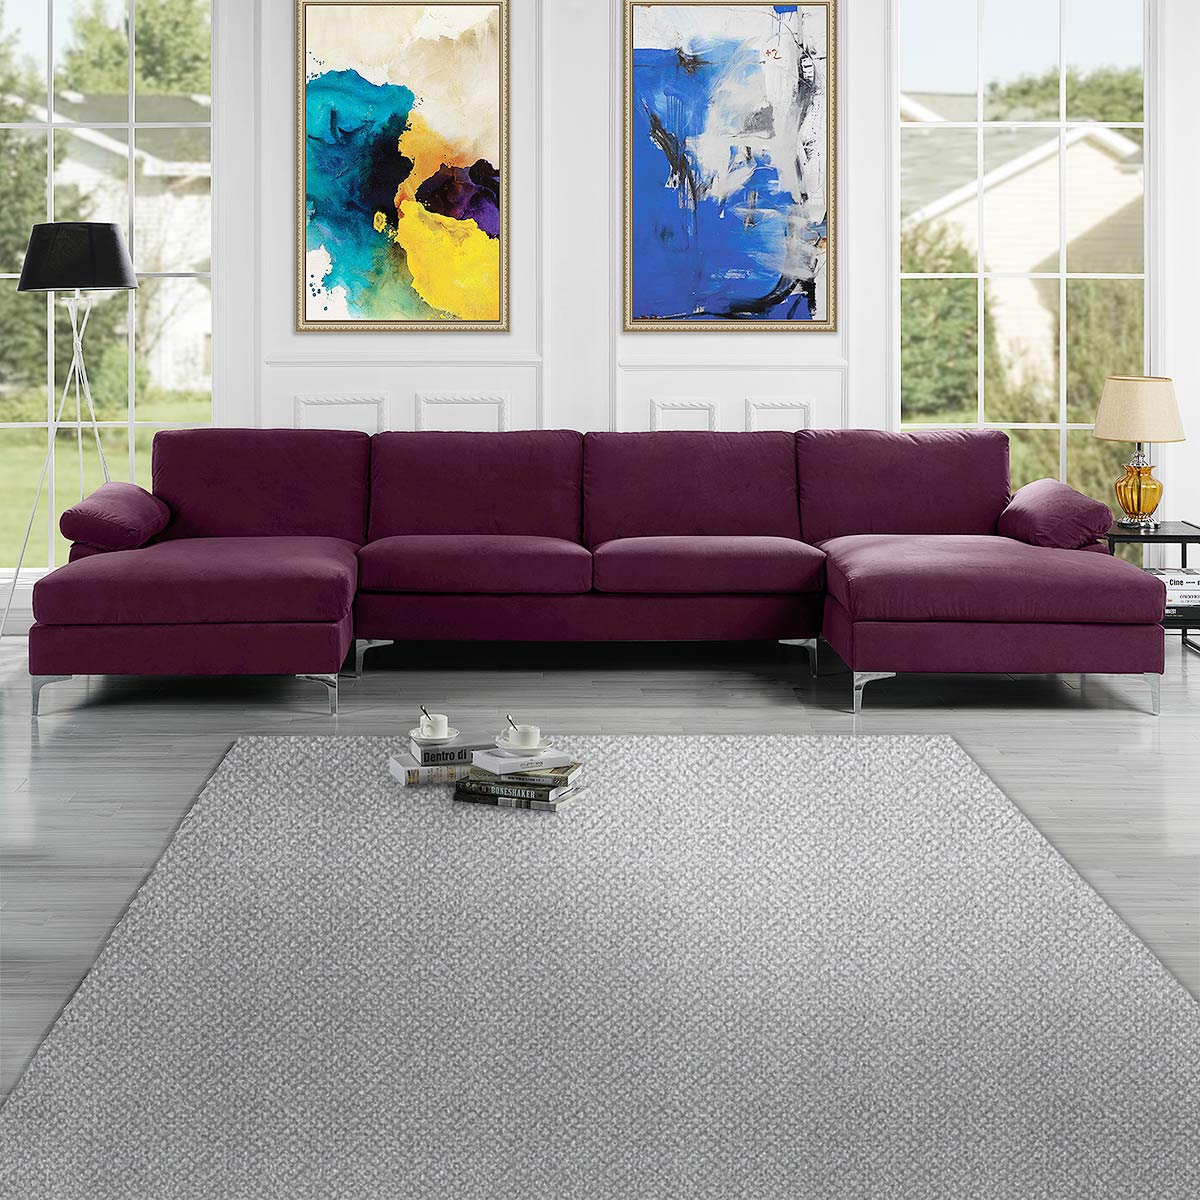 Mobilis Modern Large Microfiber Velvet Fabric U Shape Sectional Sofa With Double Extra Wide Chaise Lounge Purple Walmart Com Walmart Com